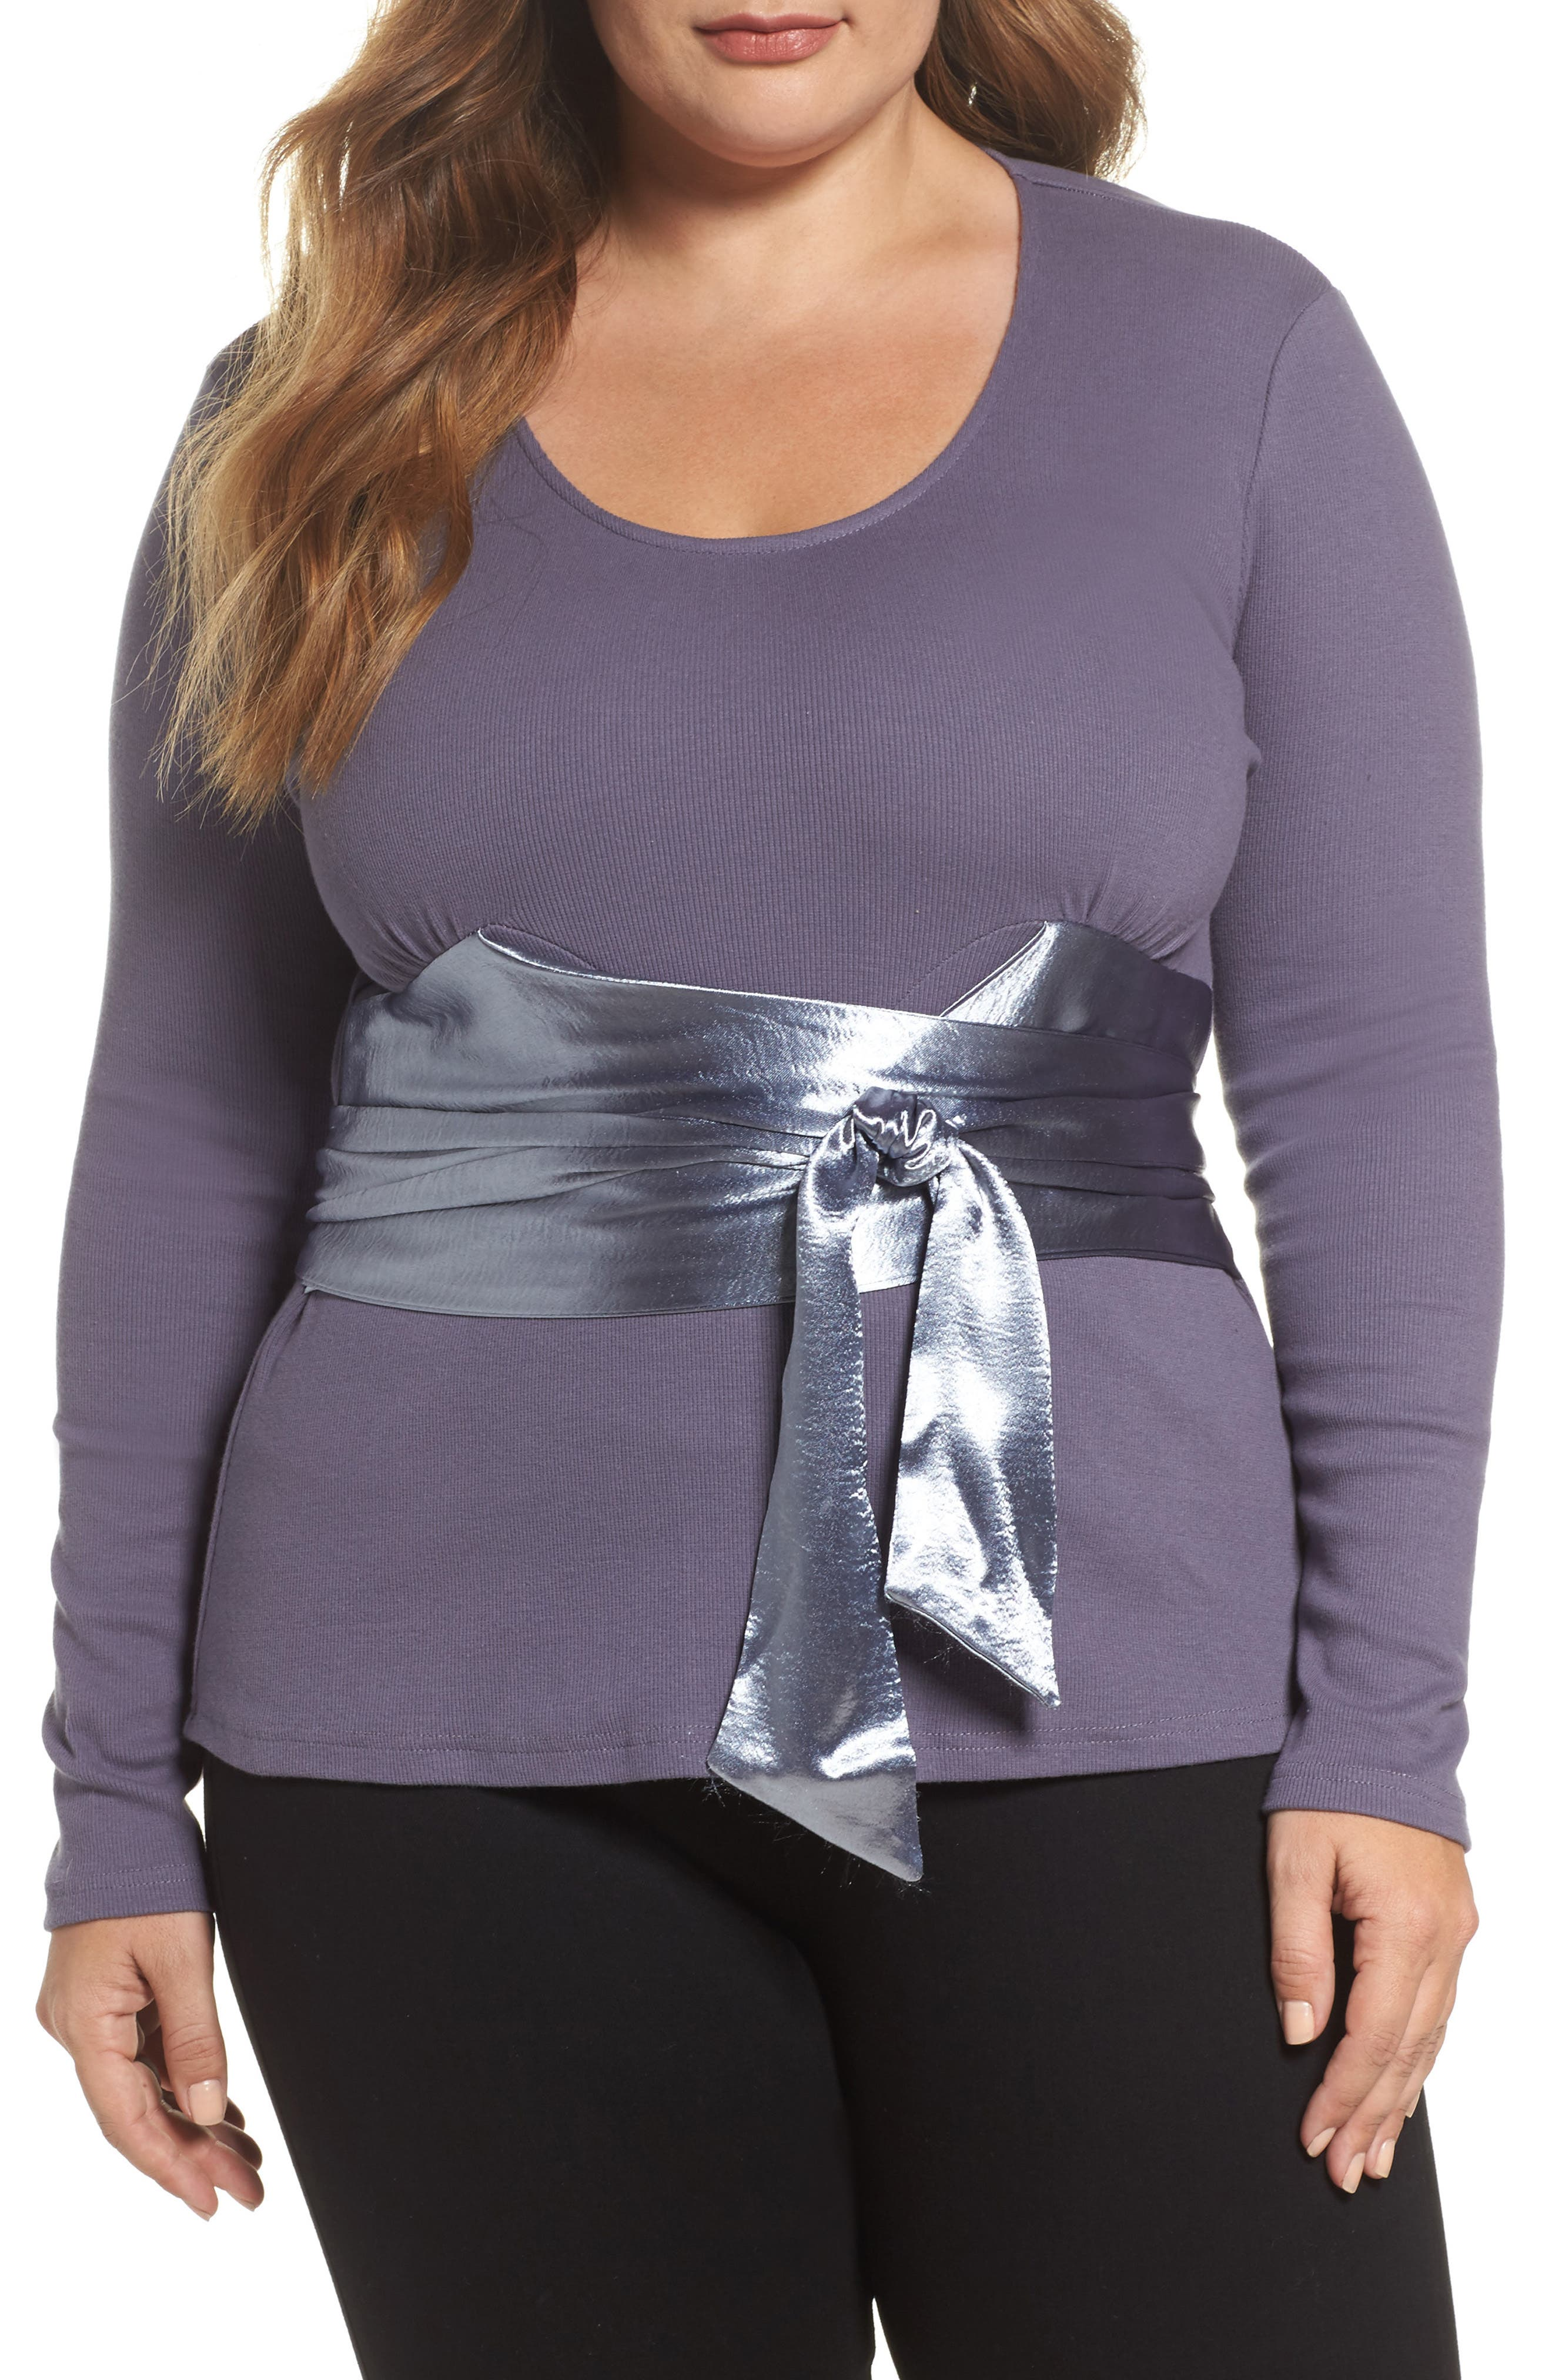 Alternate Image 1 Selected - LOST INK Satin Sash Knit Top (Plus Size)